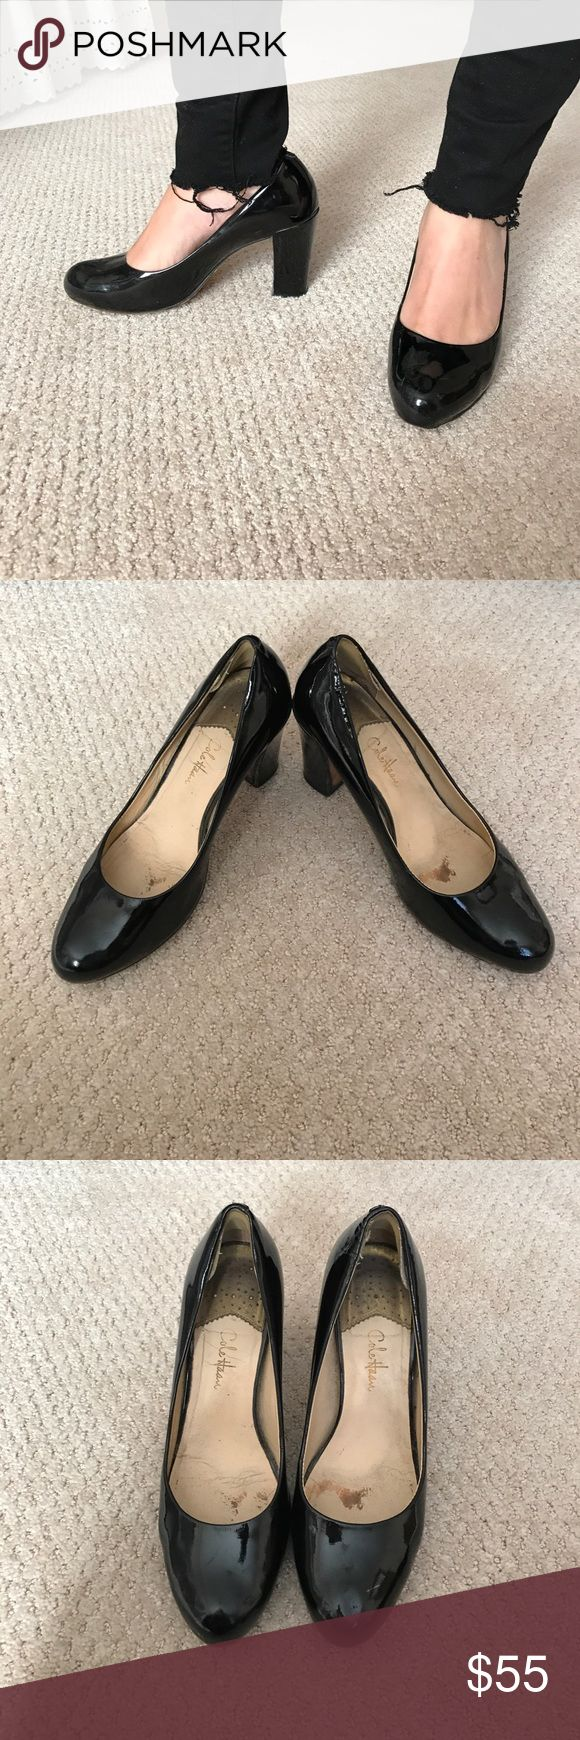 Cole Haan Nike air black patent pump Cole Haan Nike Air black patent pumps. Size 8. Very comfortable, Nike air technology is great for work! Ships with original box Cole Haan Shoes Heels